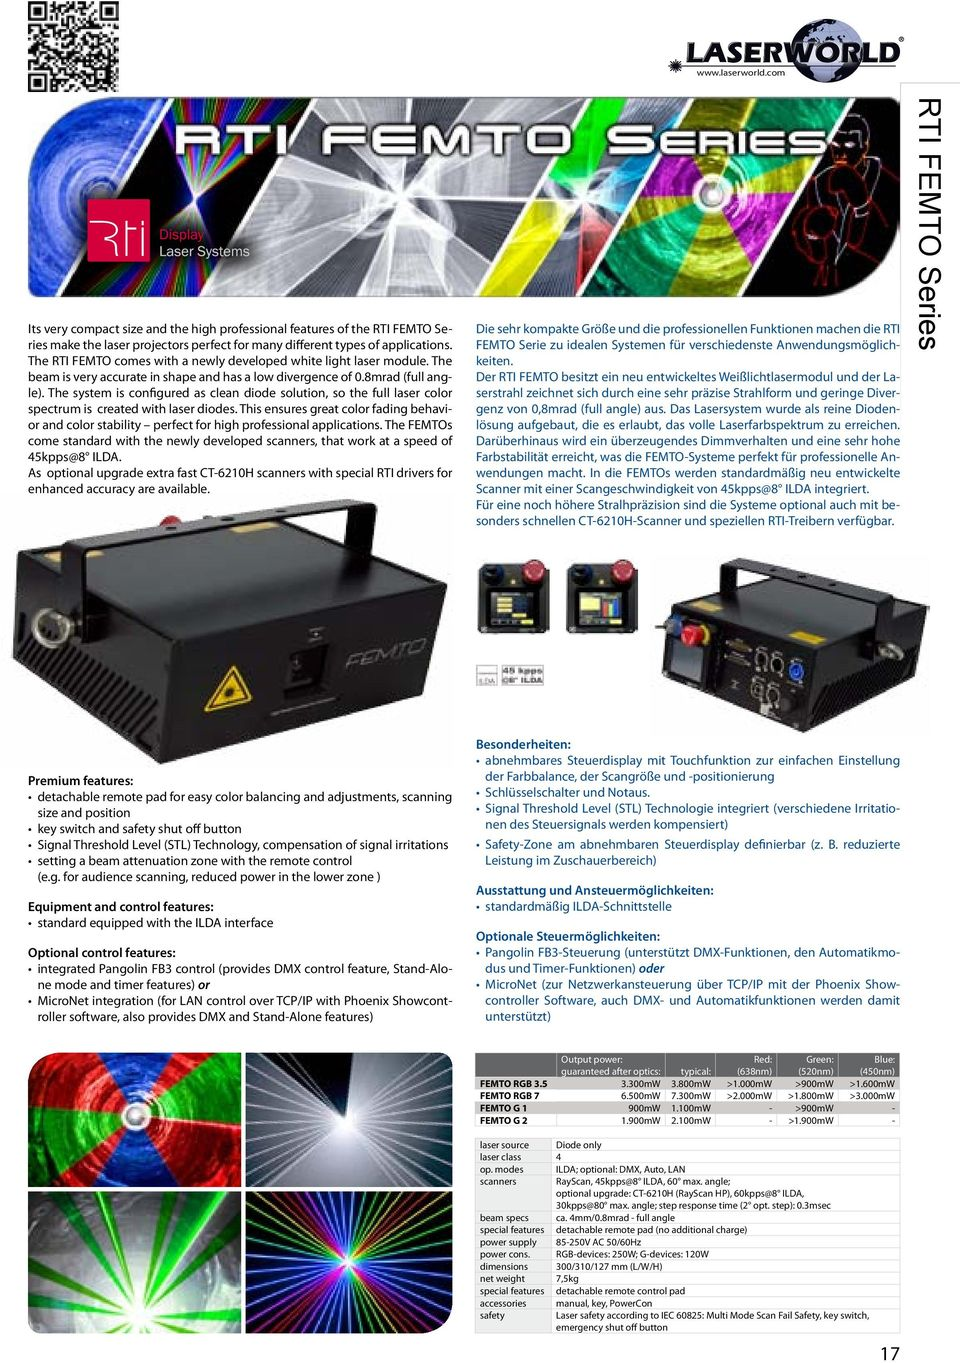 The system is configured as clean diode solution, so the full laser color spectrum is created with laser diodes.